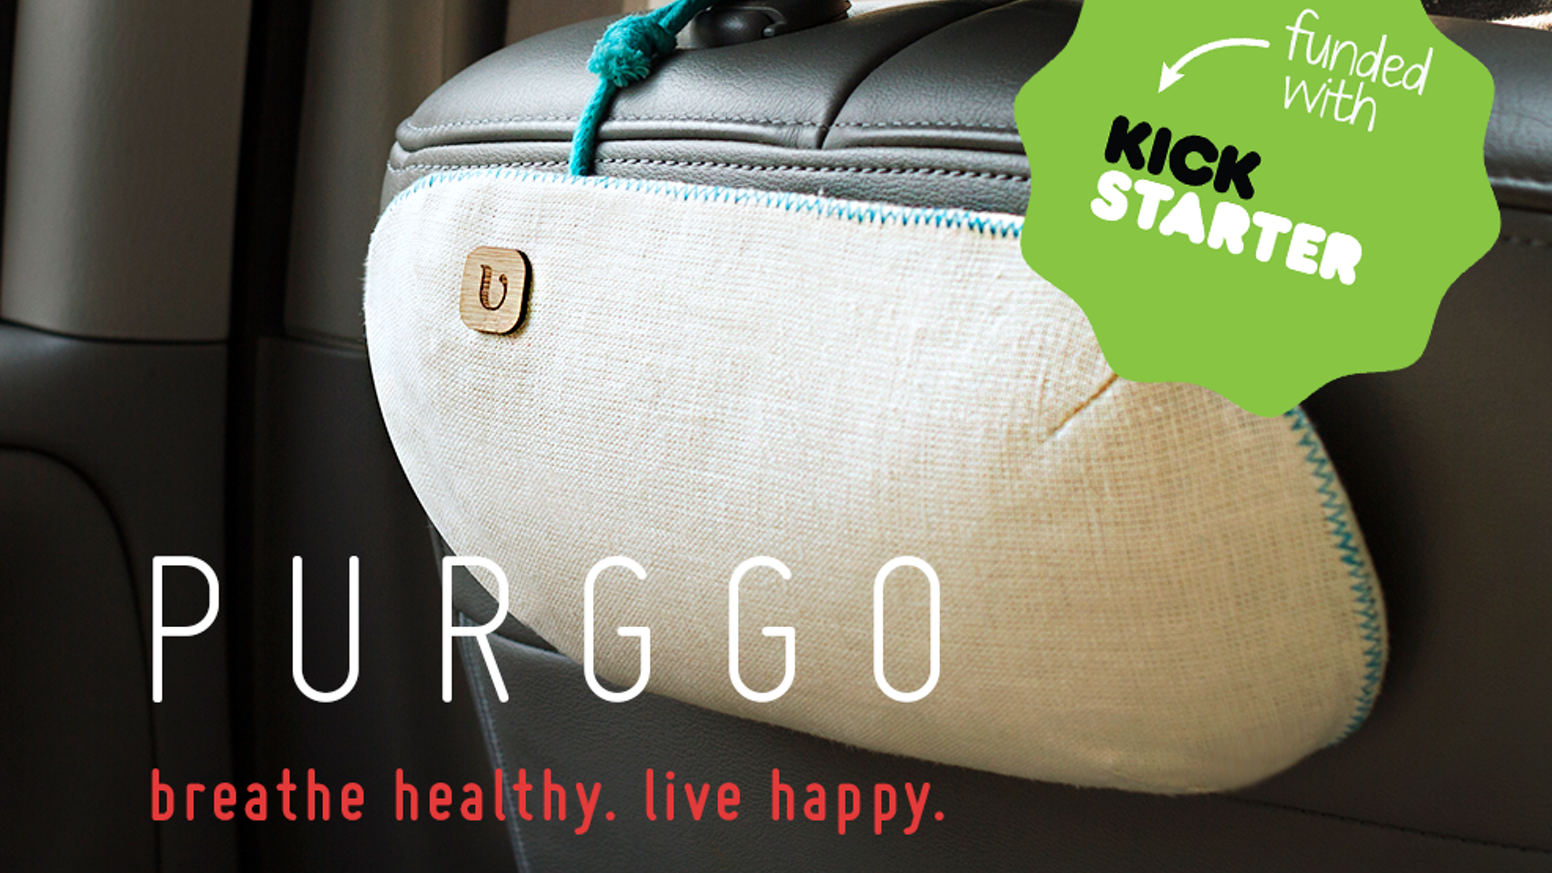 PURGGO Car Air Freshener -Absorbs Odor.Fragrance & Scent Free. Lasts 365+ Days - Made with 100% Bamboo Charcoal